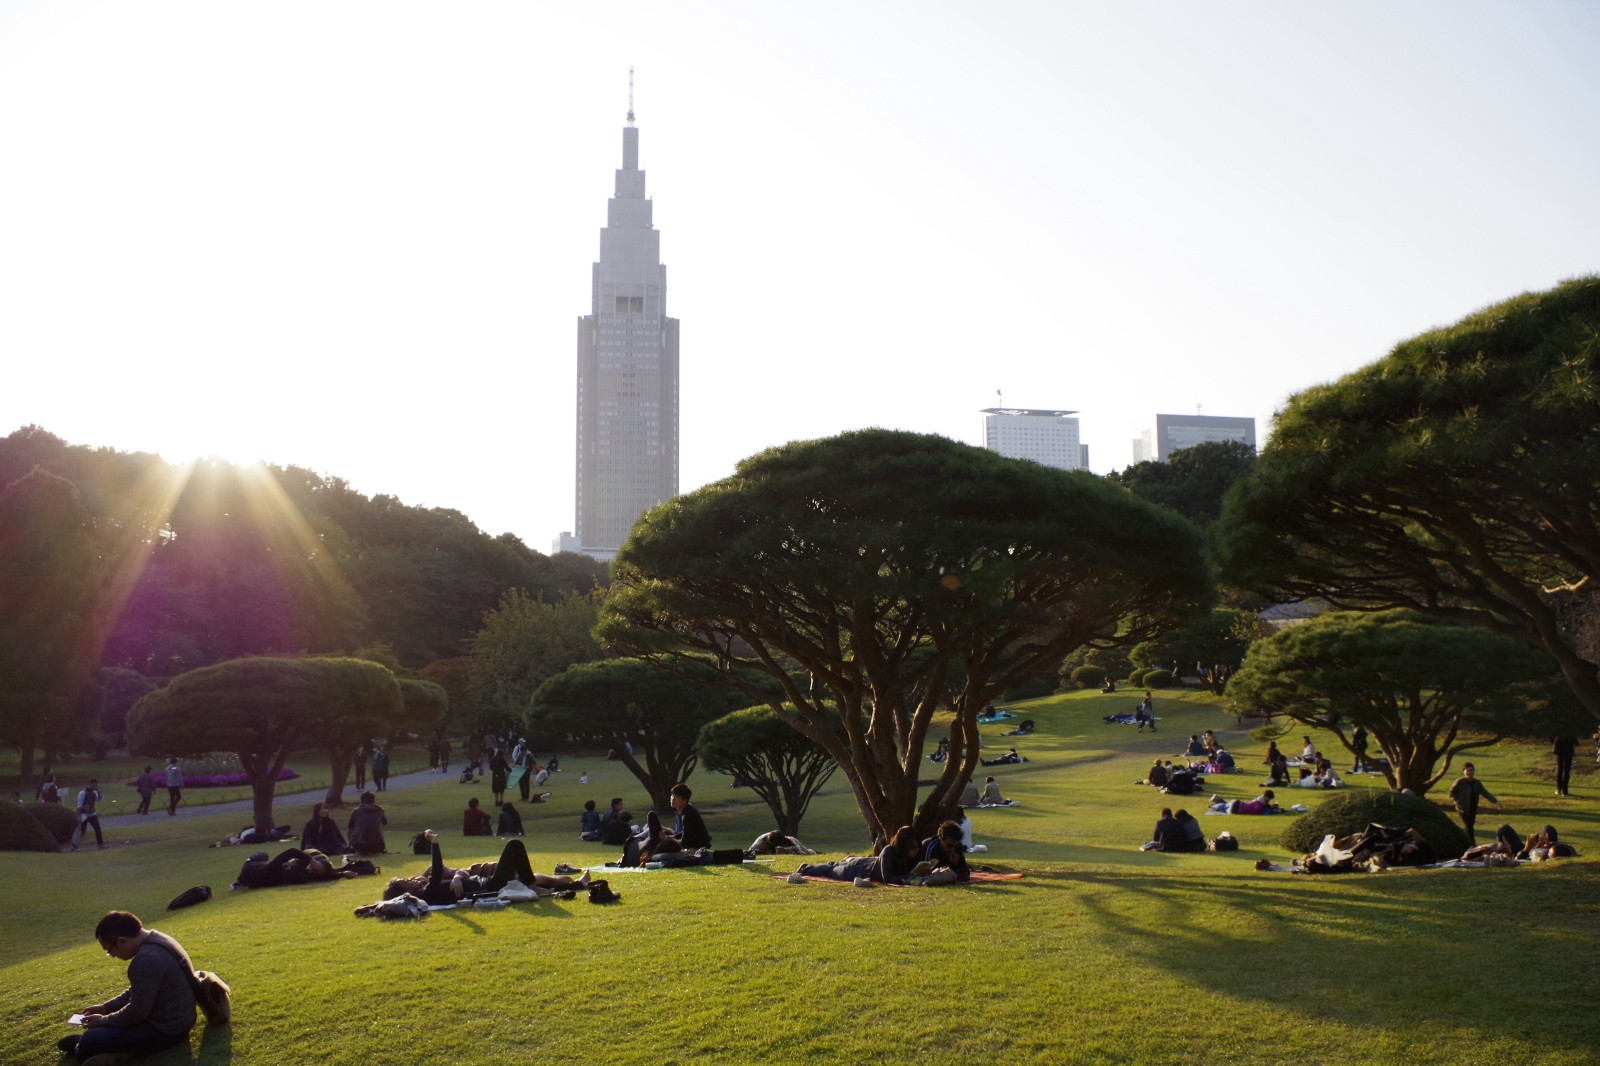 The views of Shinjuku Gyoen Park and skyscraper in Shinjuku